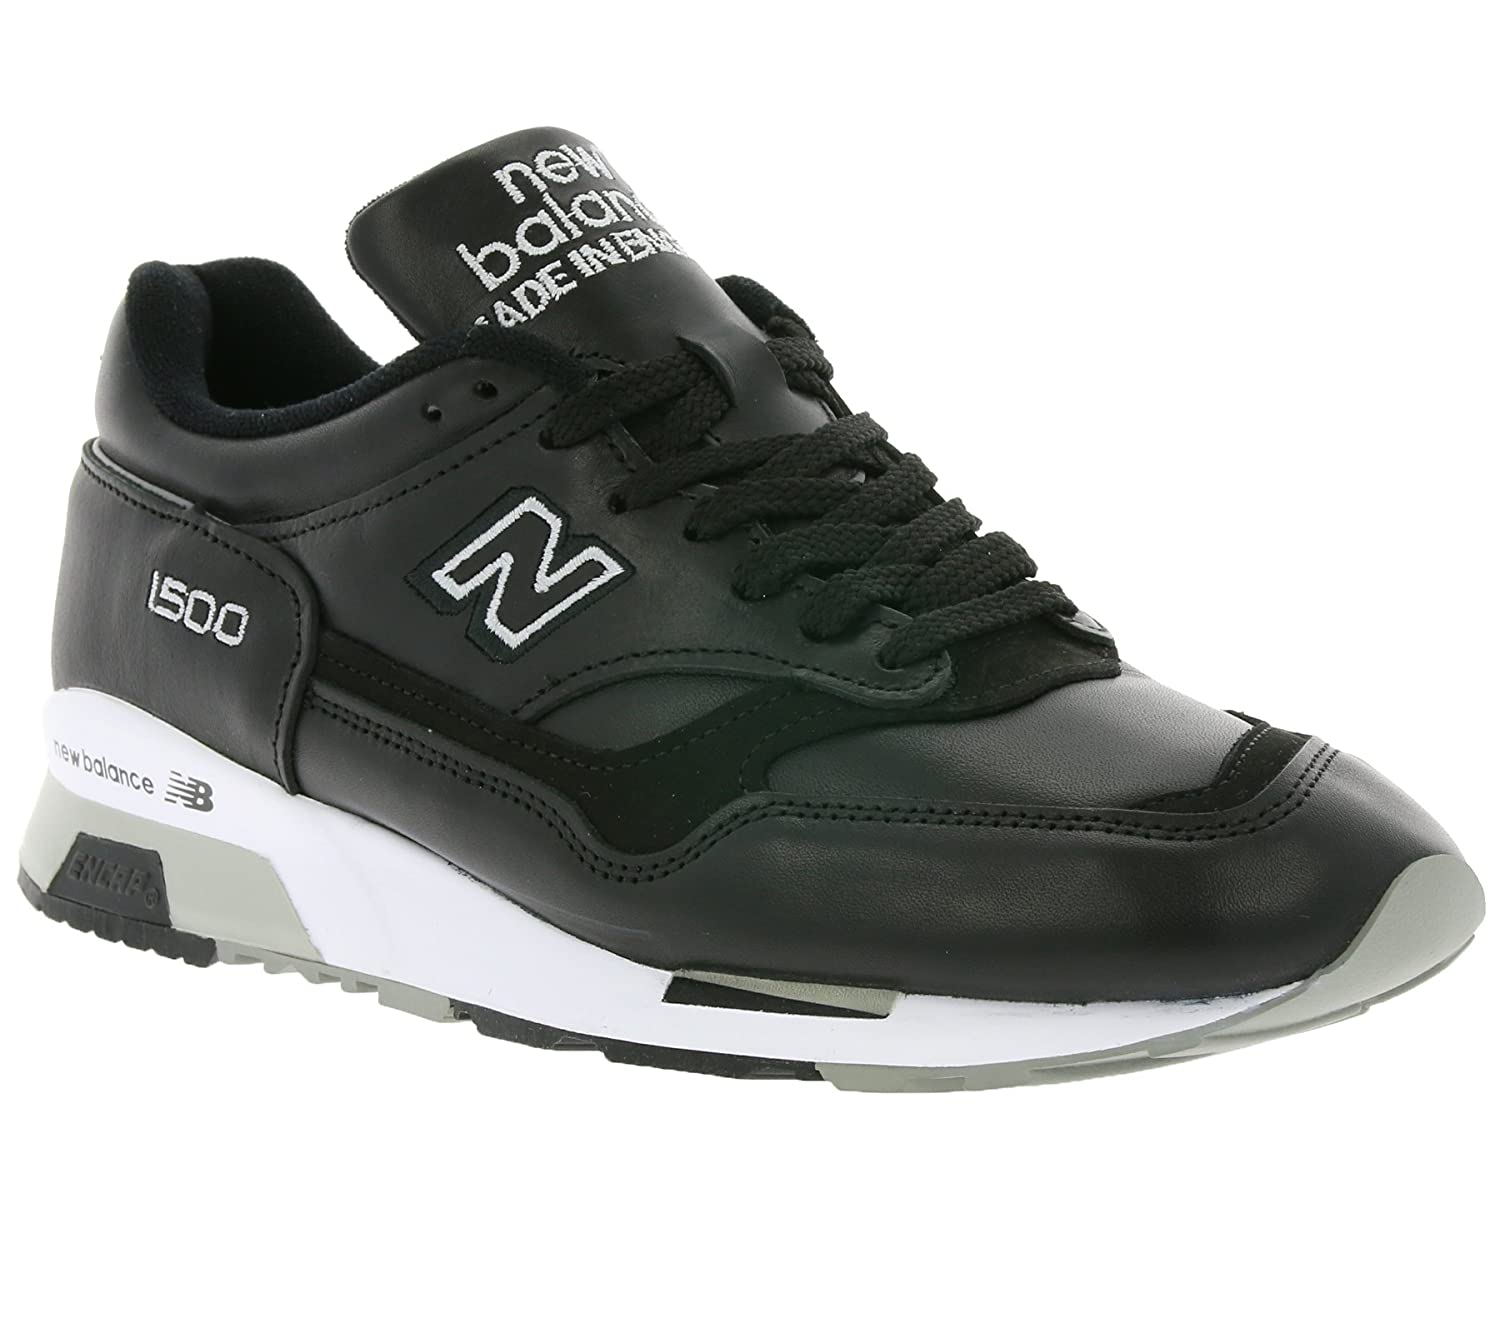 low priced 3f00a e830e New Balance 1500 Made in UK Men's Real Leather Sneaker Black ...